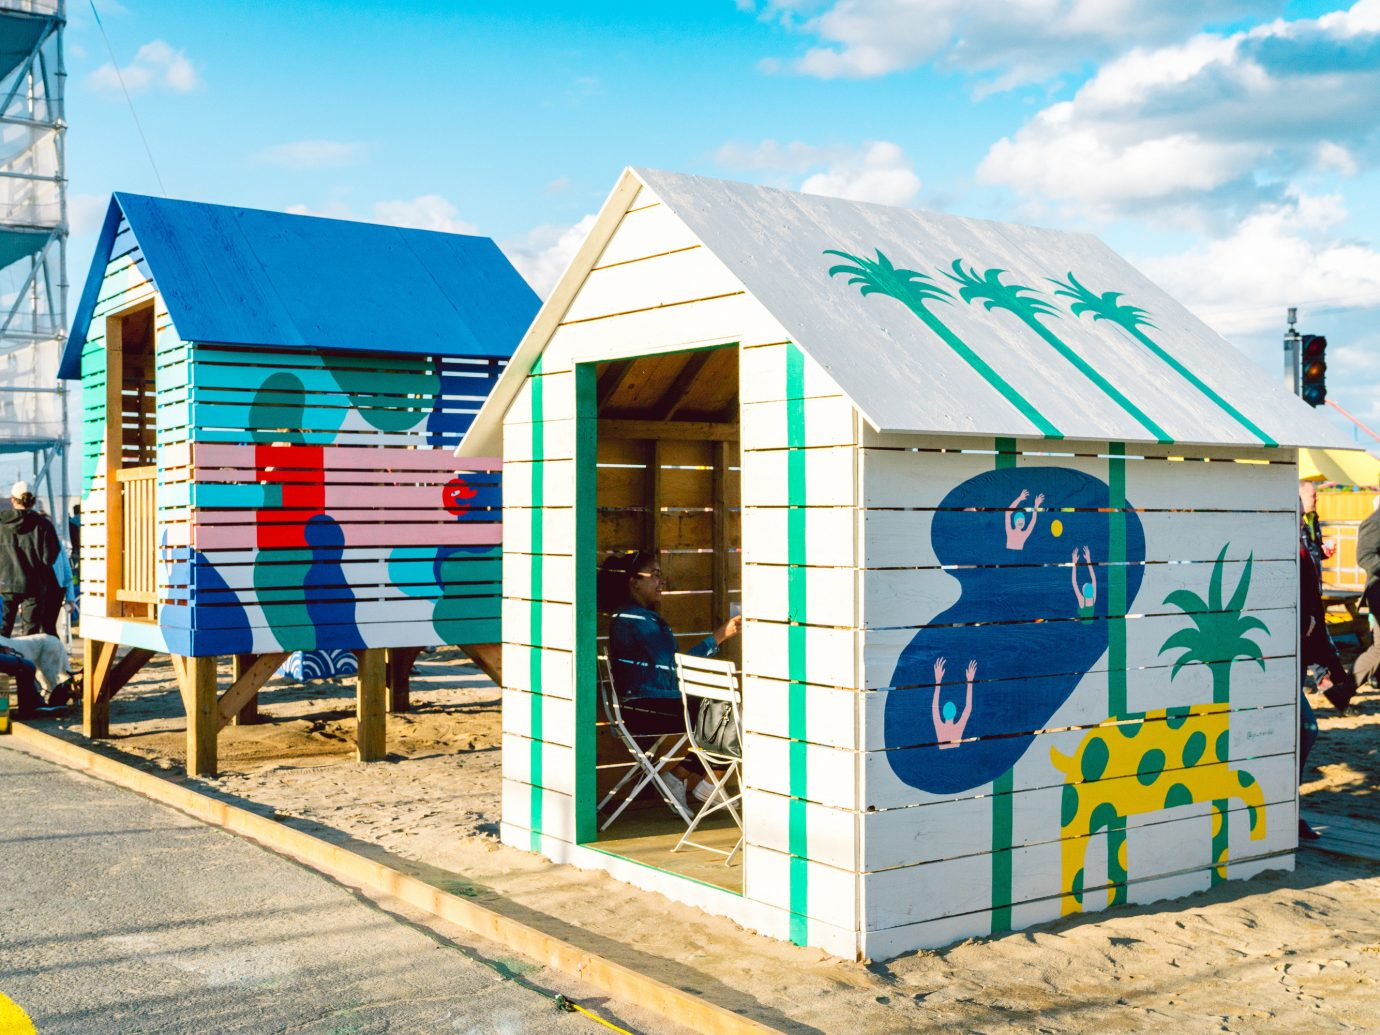 Trip Ideas outdoor sky public space Playground house recreation City shed